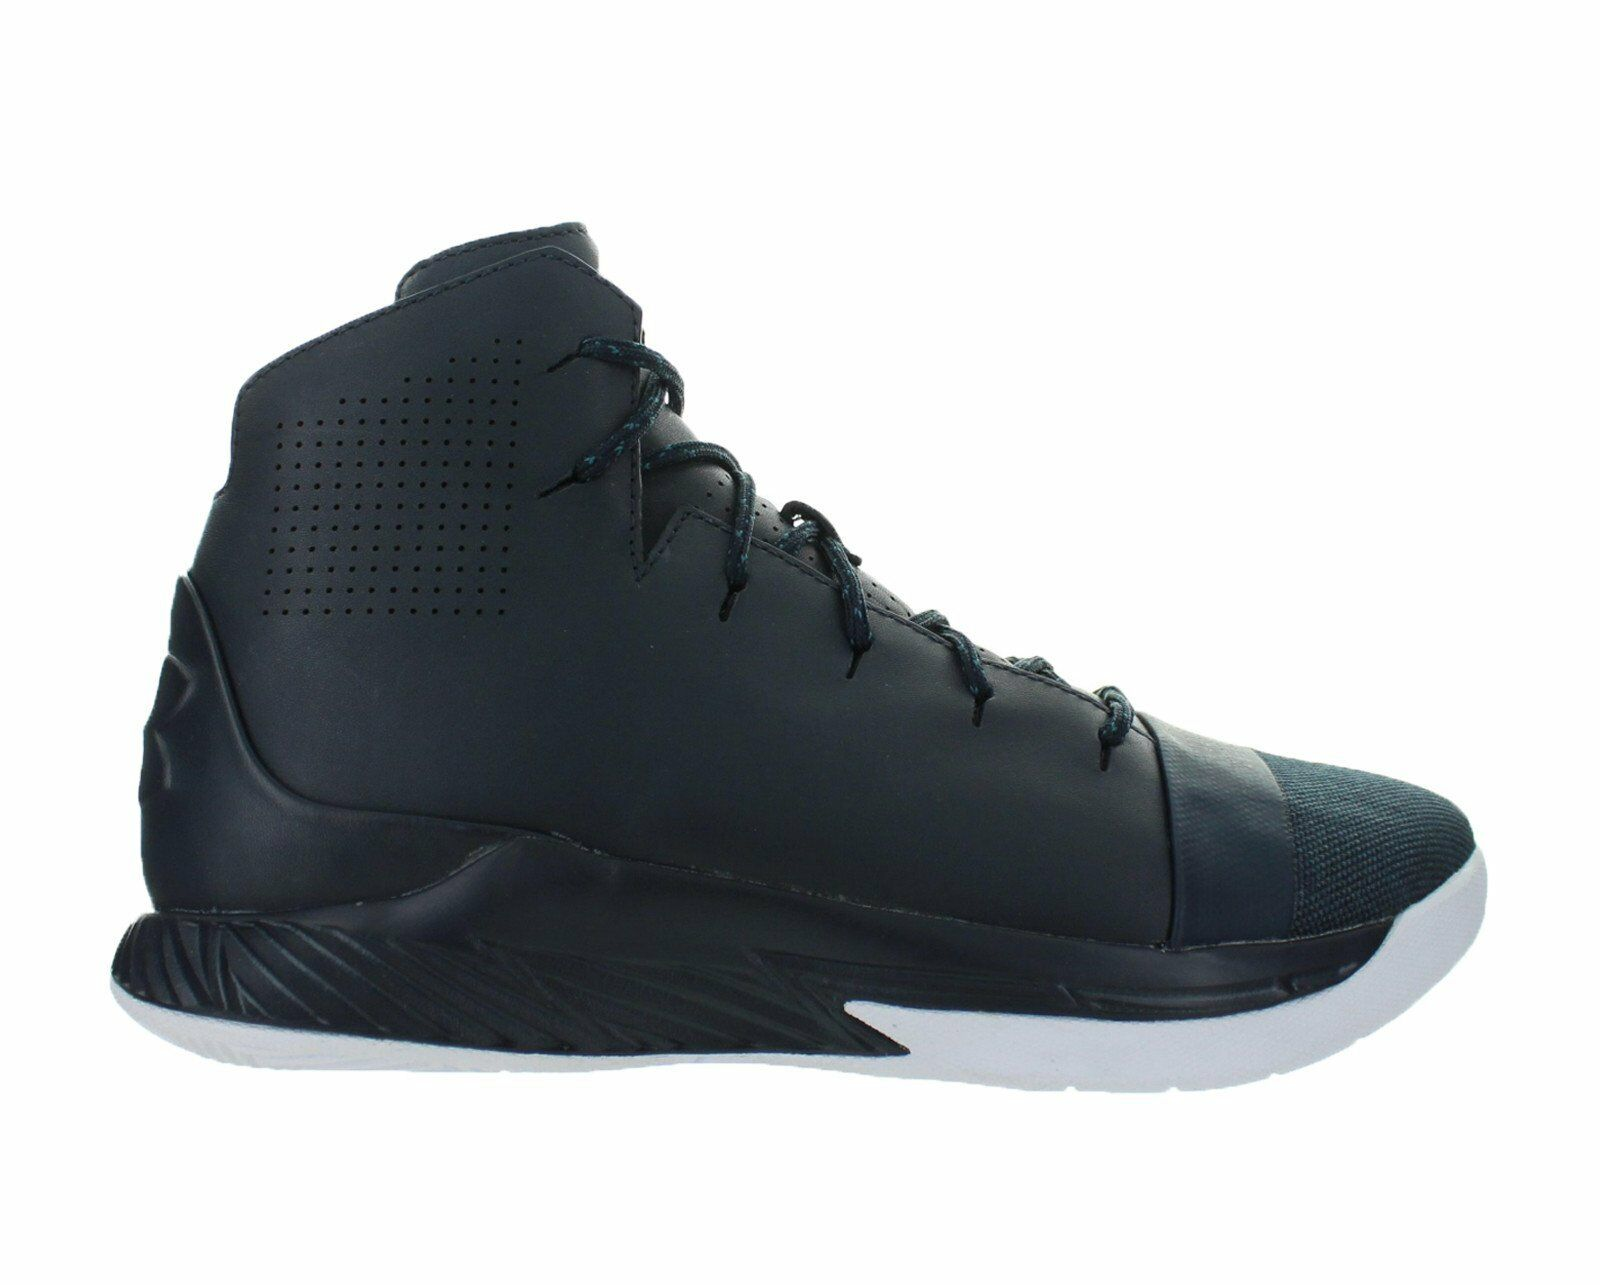 2e9612e902f4 Mens Under Armour Primo Mid Blue Drift Drift Drift Marlin Blue White  1296620-288 7ba832